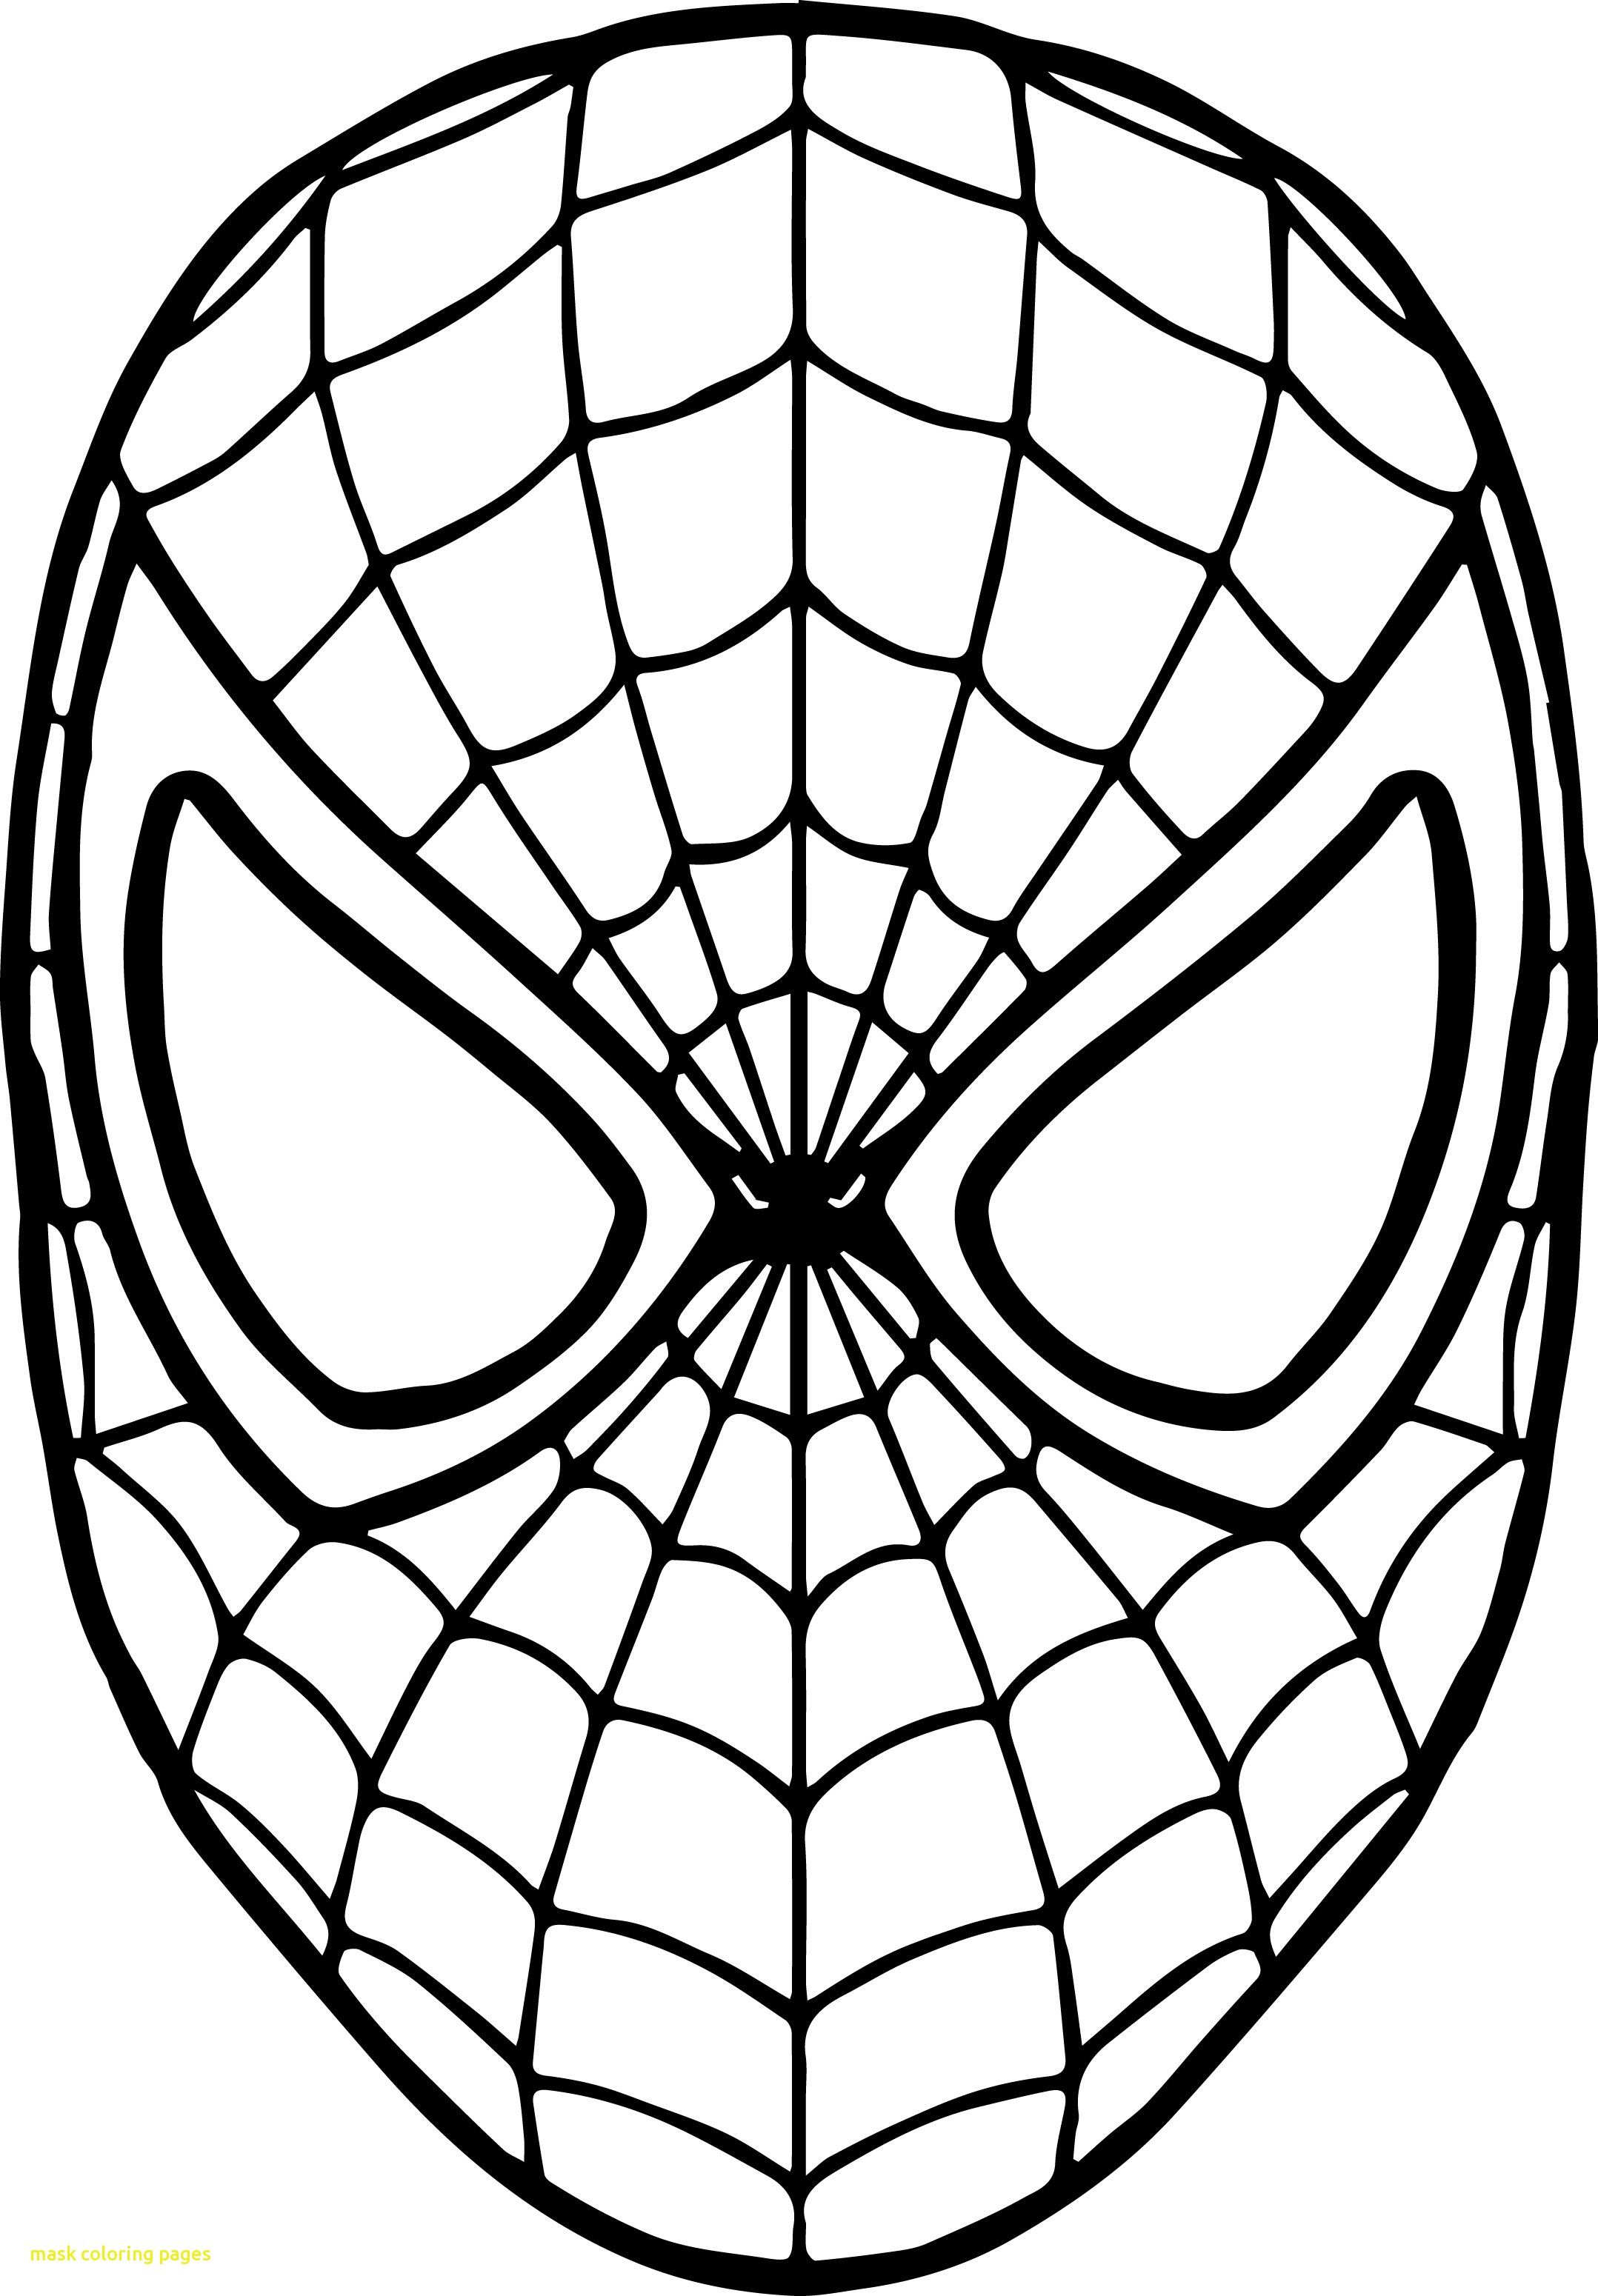 Rey Mysterio Mask Coloring Pages